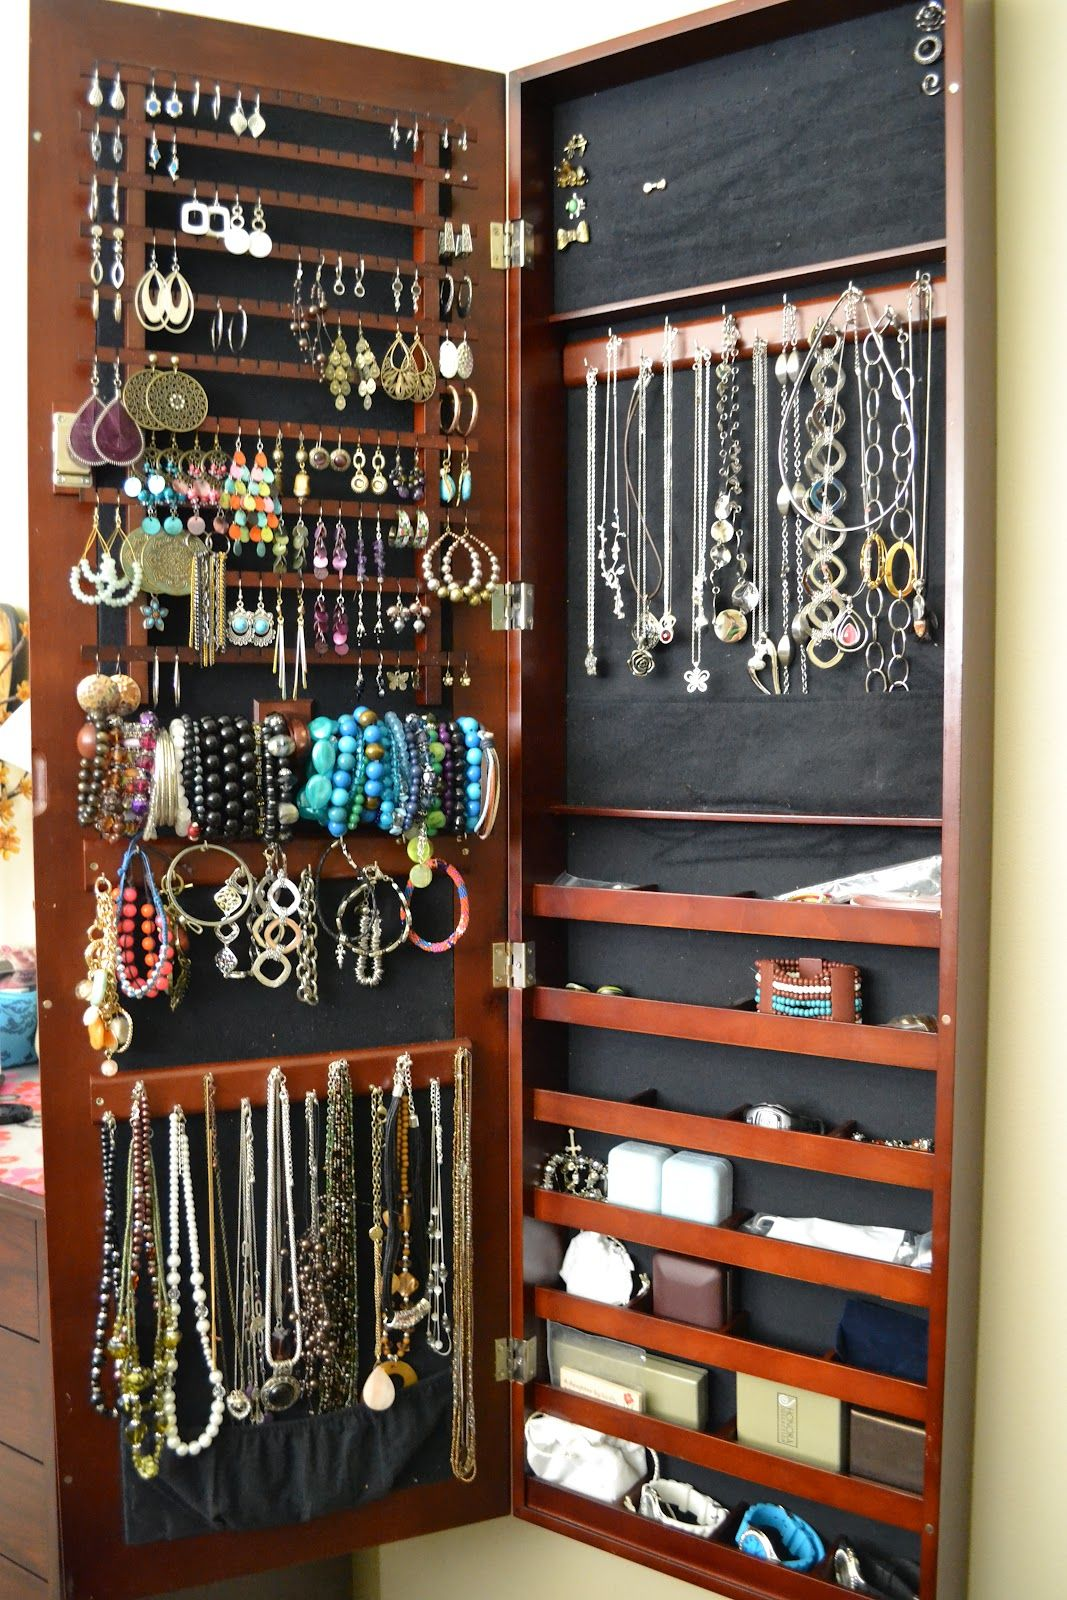 Lori Greiner Jewelry wall mounted Organizer 16900 on QVC Now this